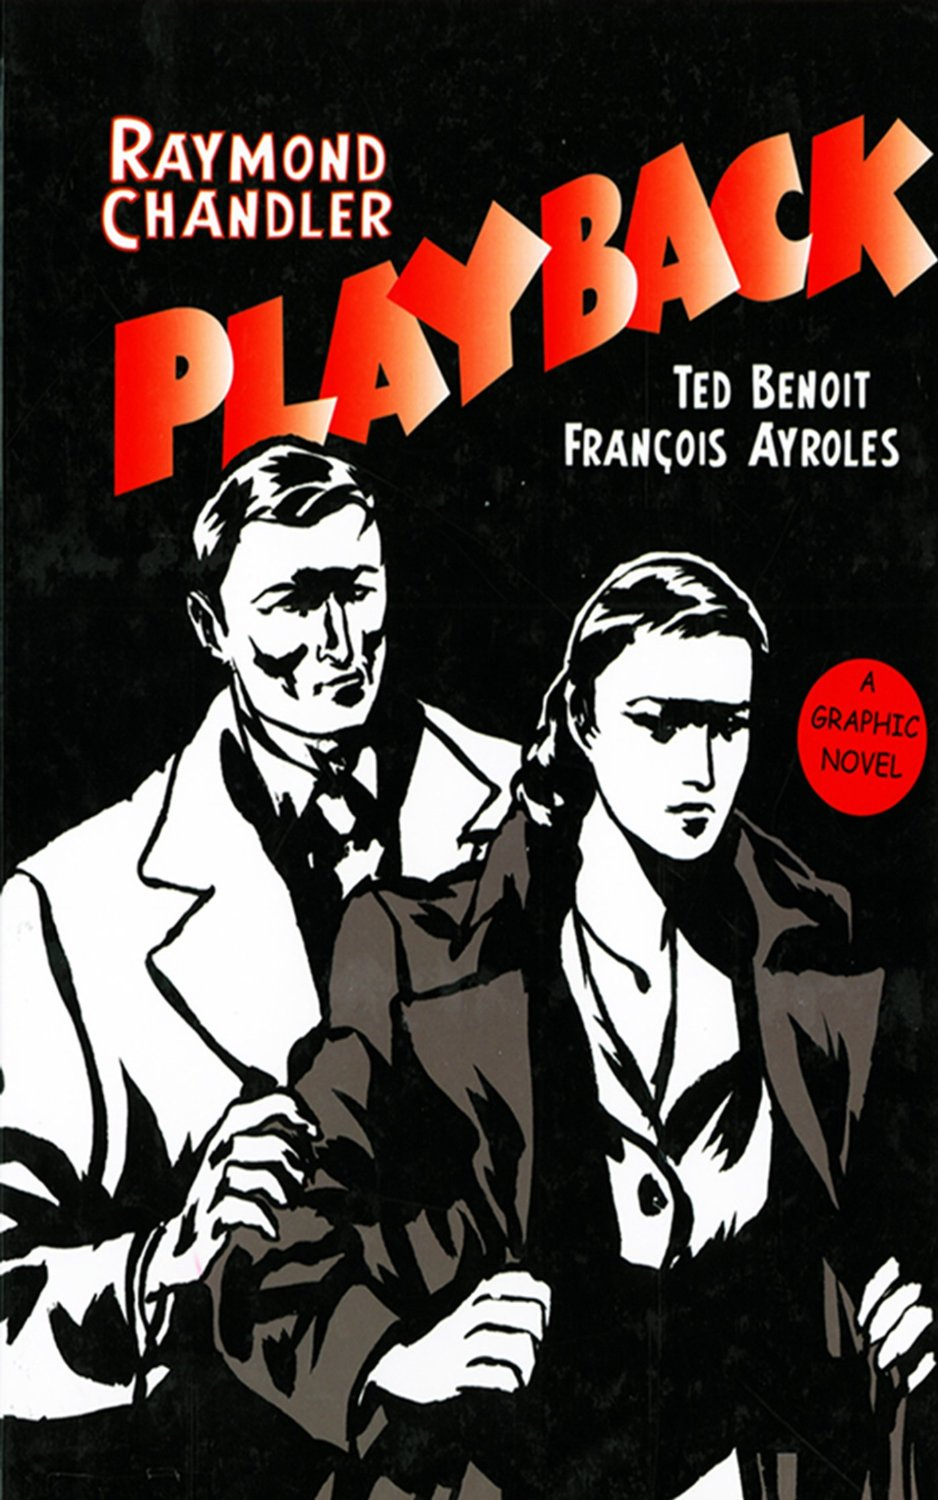 Playback graphic novel by Raymond Chandler